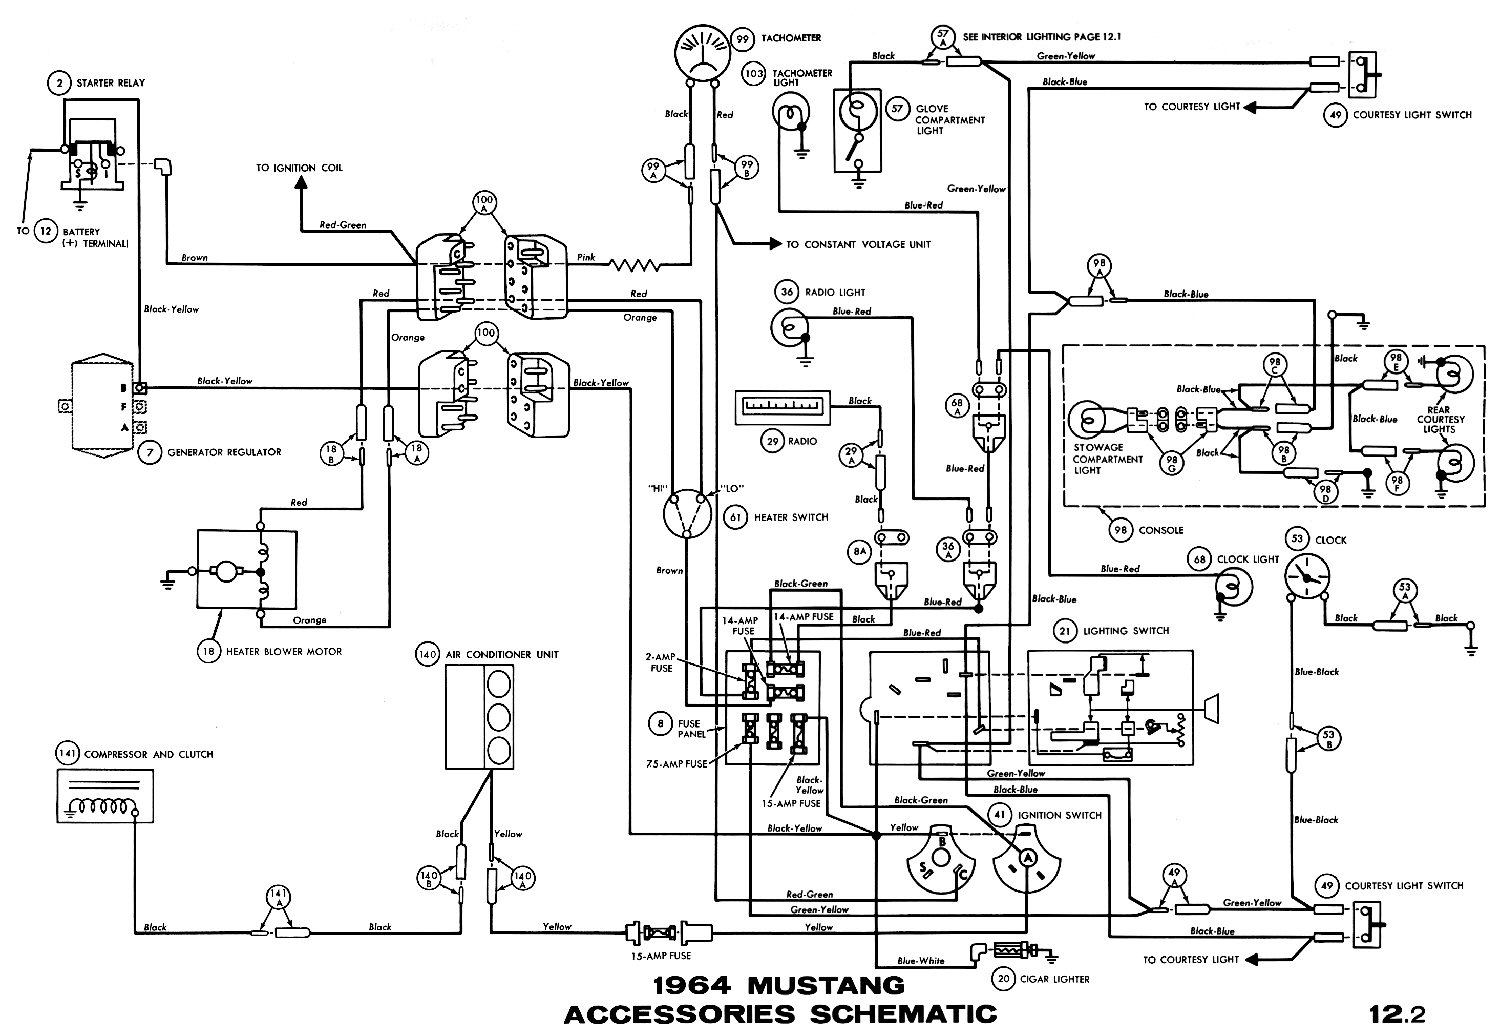 1964m 1964 mustang wiring diagrams average joe restoration 2000 ford mustang radio wiring diagram at aneh.co